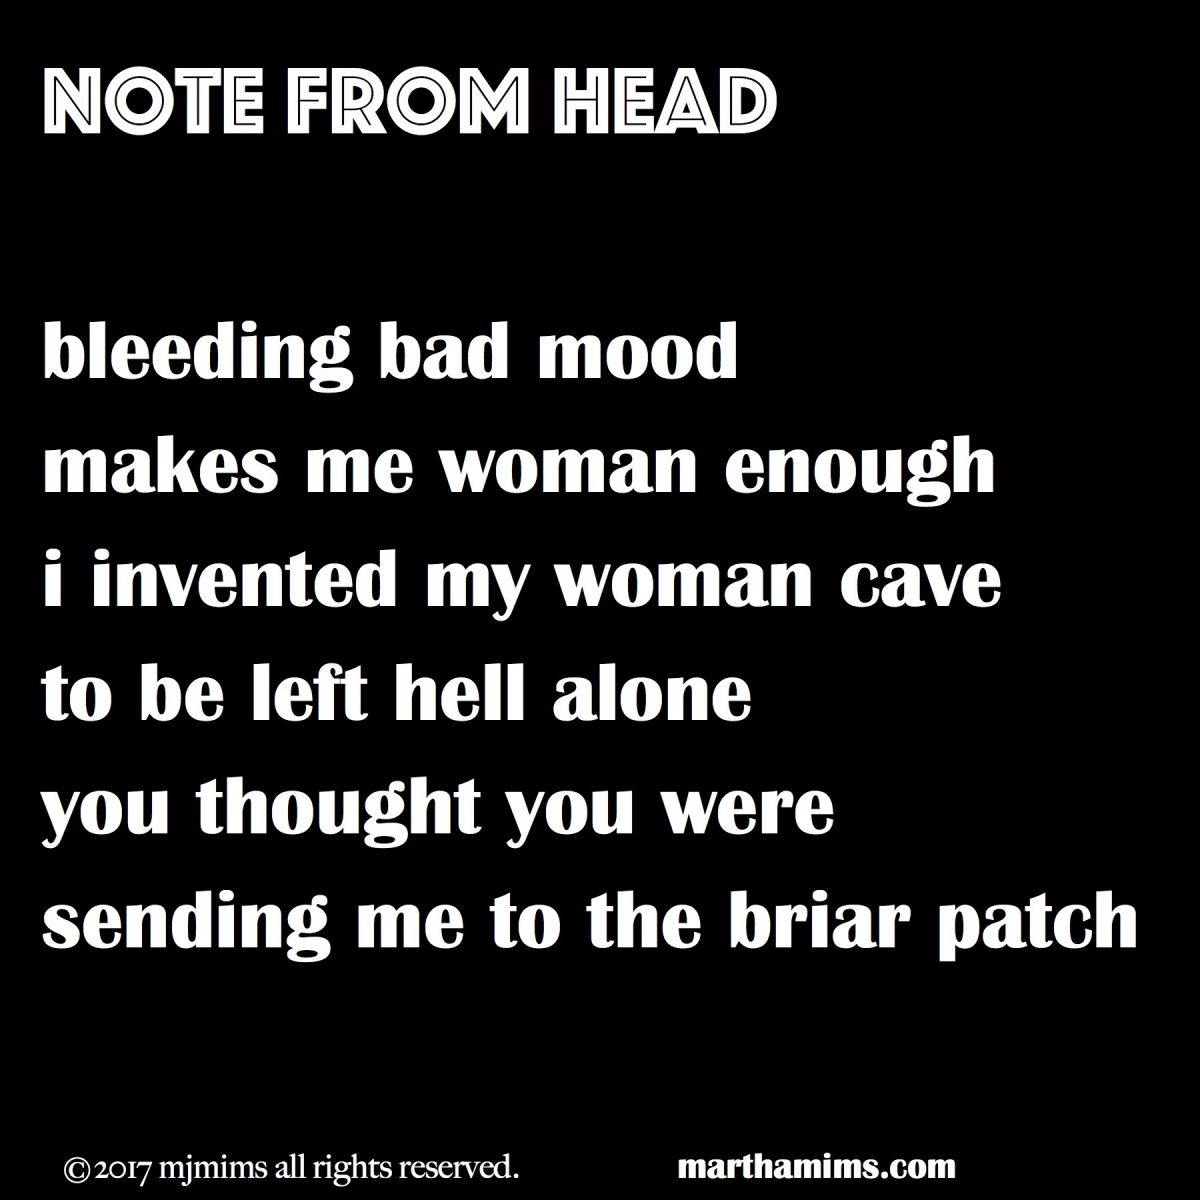 notefromhead